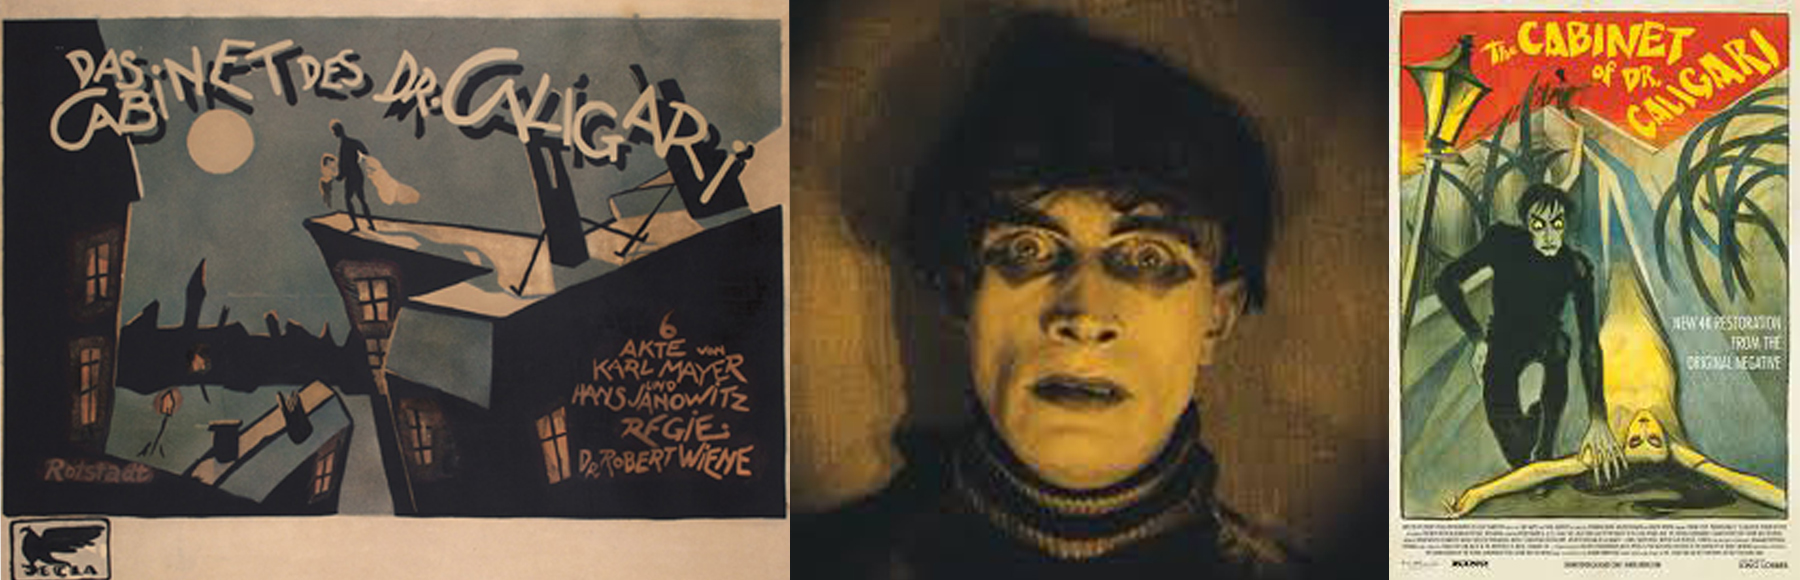 The Cabinet of Dr. Caligari   put German movie-making in the global spotlight for its grim, expressionist sensibility. But Elsa enjoyed lighter fare coming out of America and Sweden.